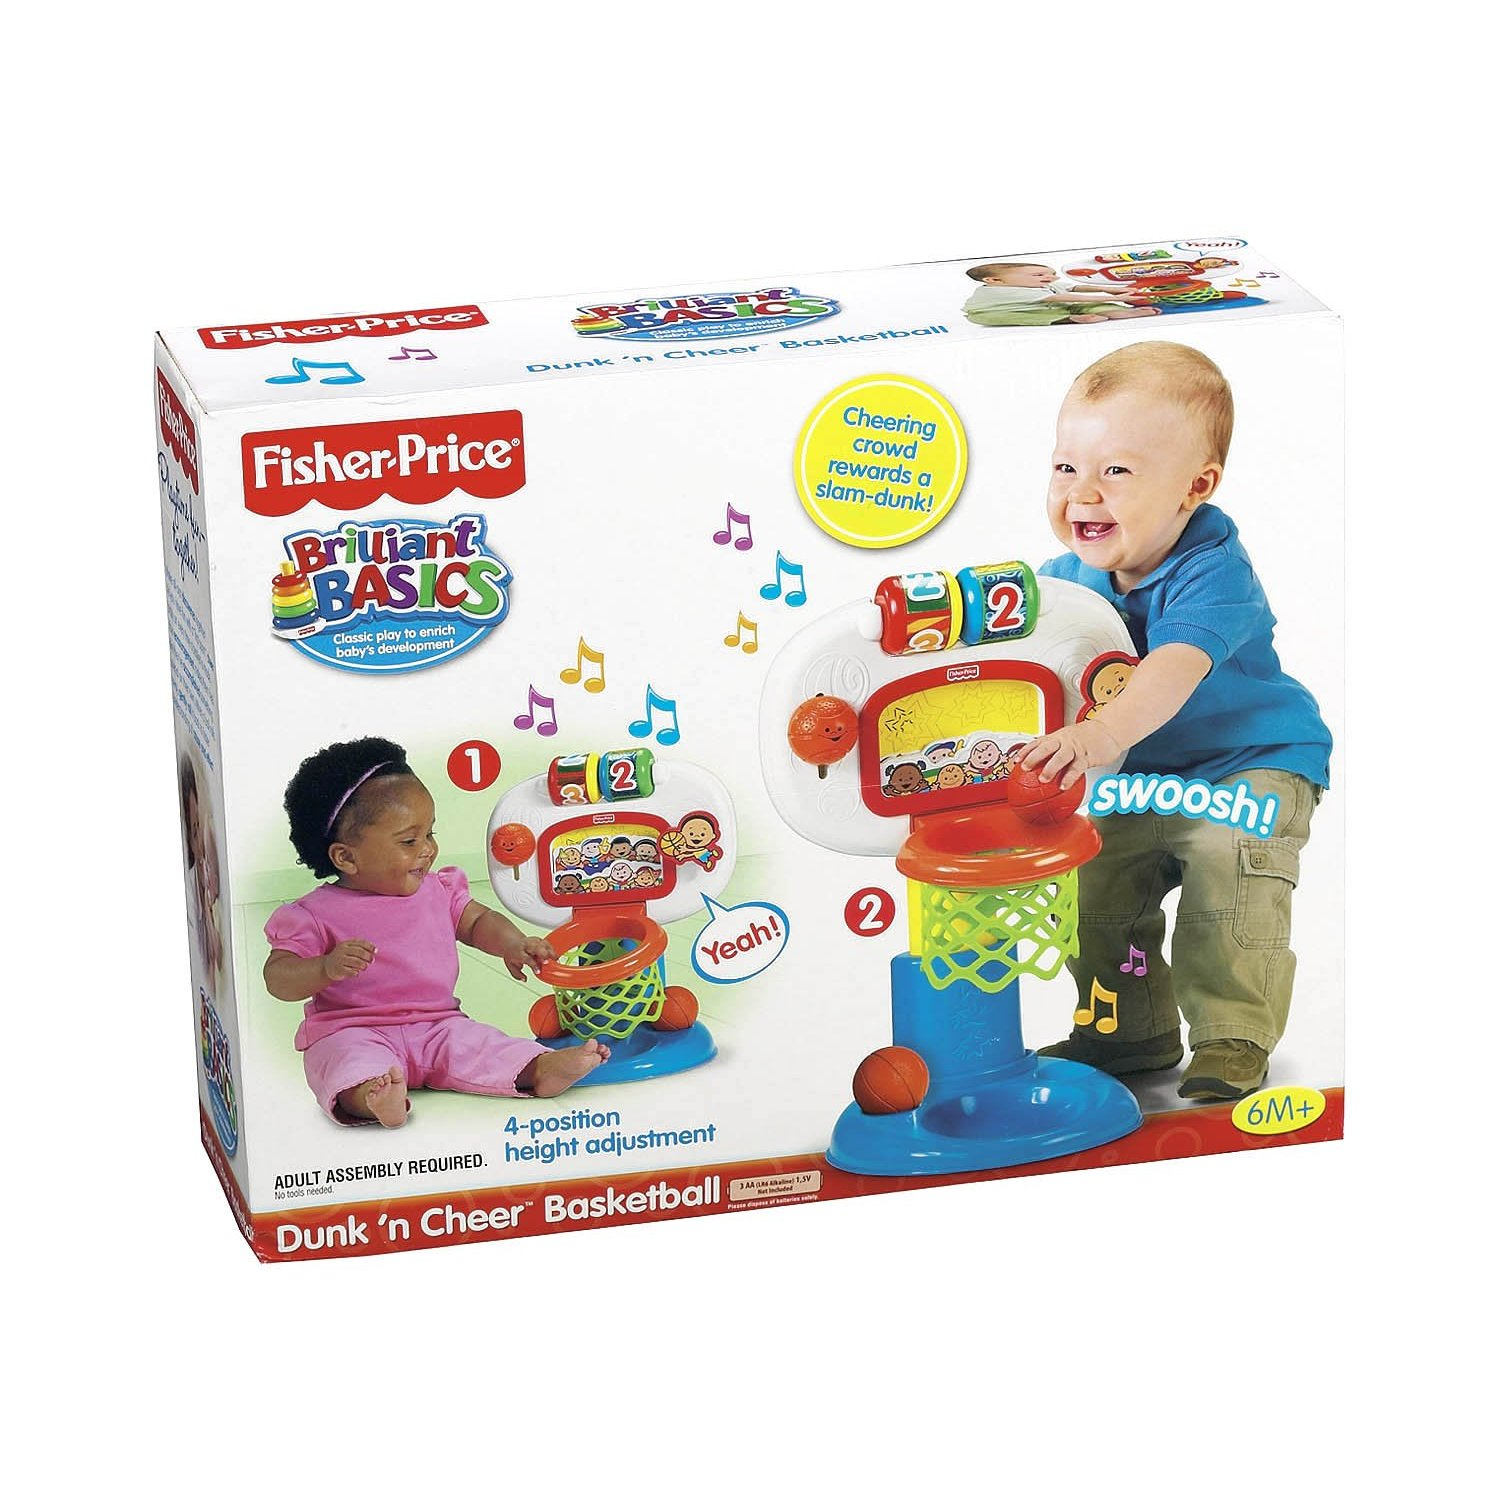 Toys For Cheerleaders : Joys of toy baby stuff new fisher price dunk n